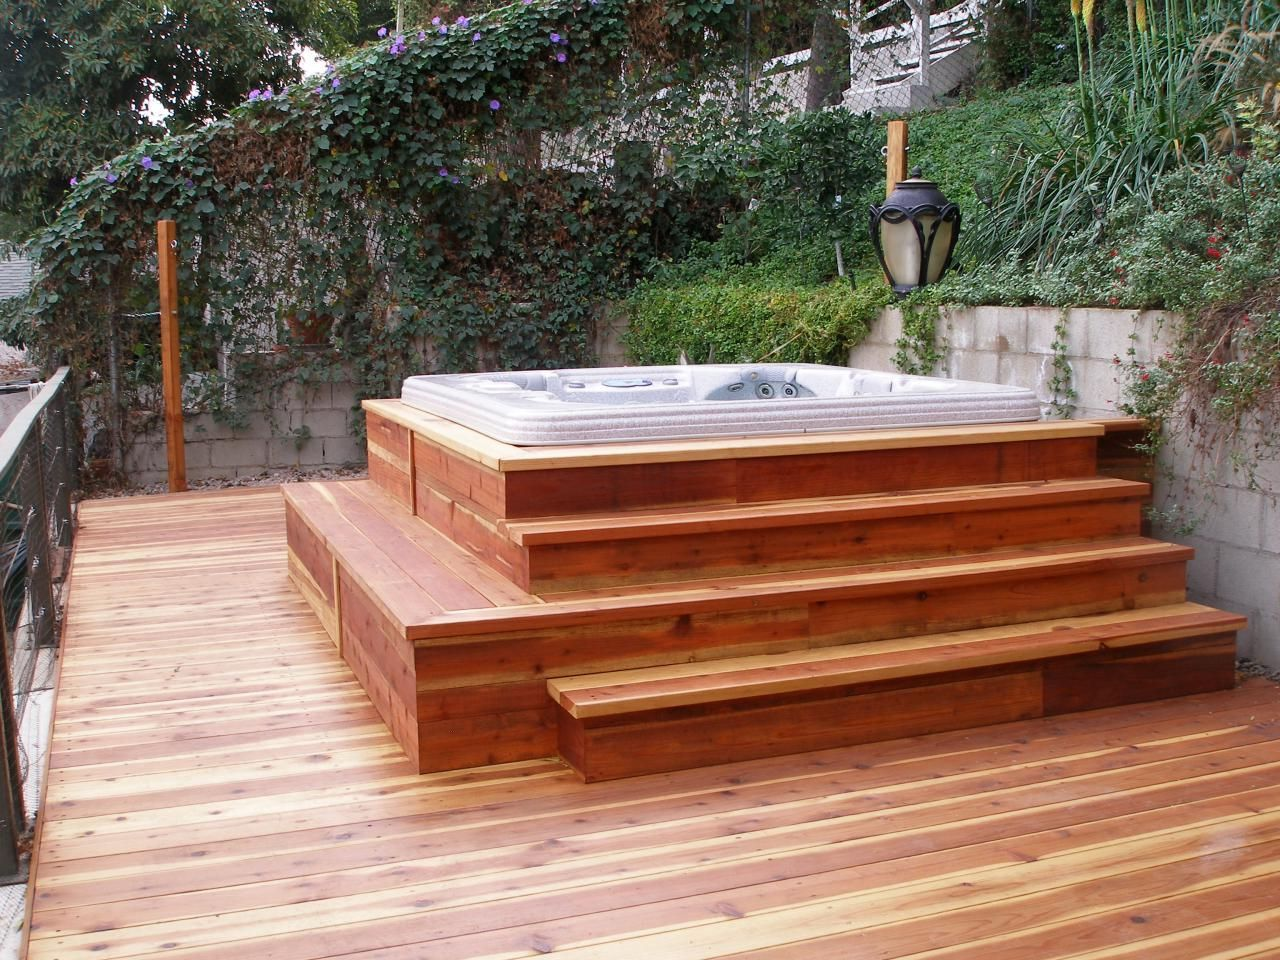 Outdoor , Backyard Deck Designs with Hot Tub Ideas ...